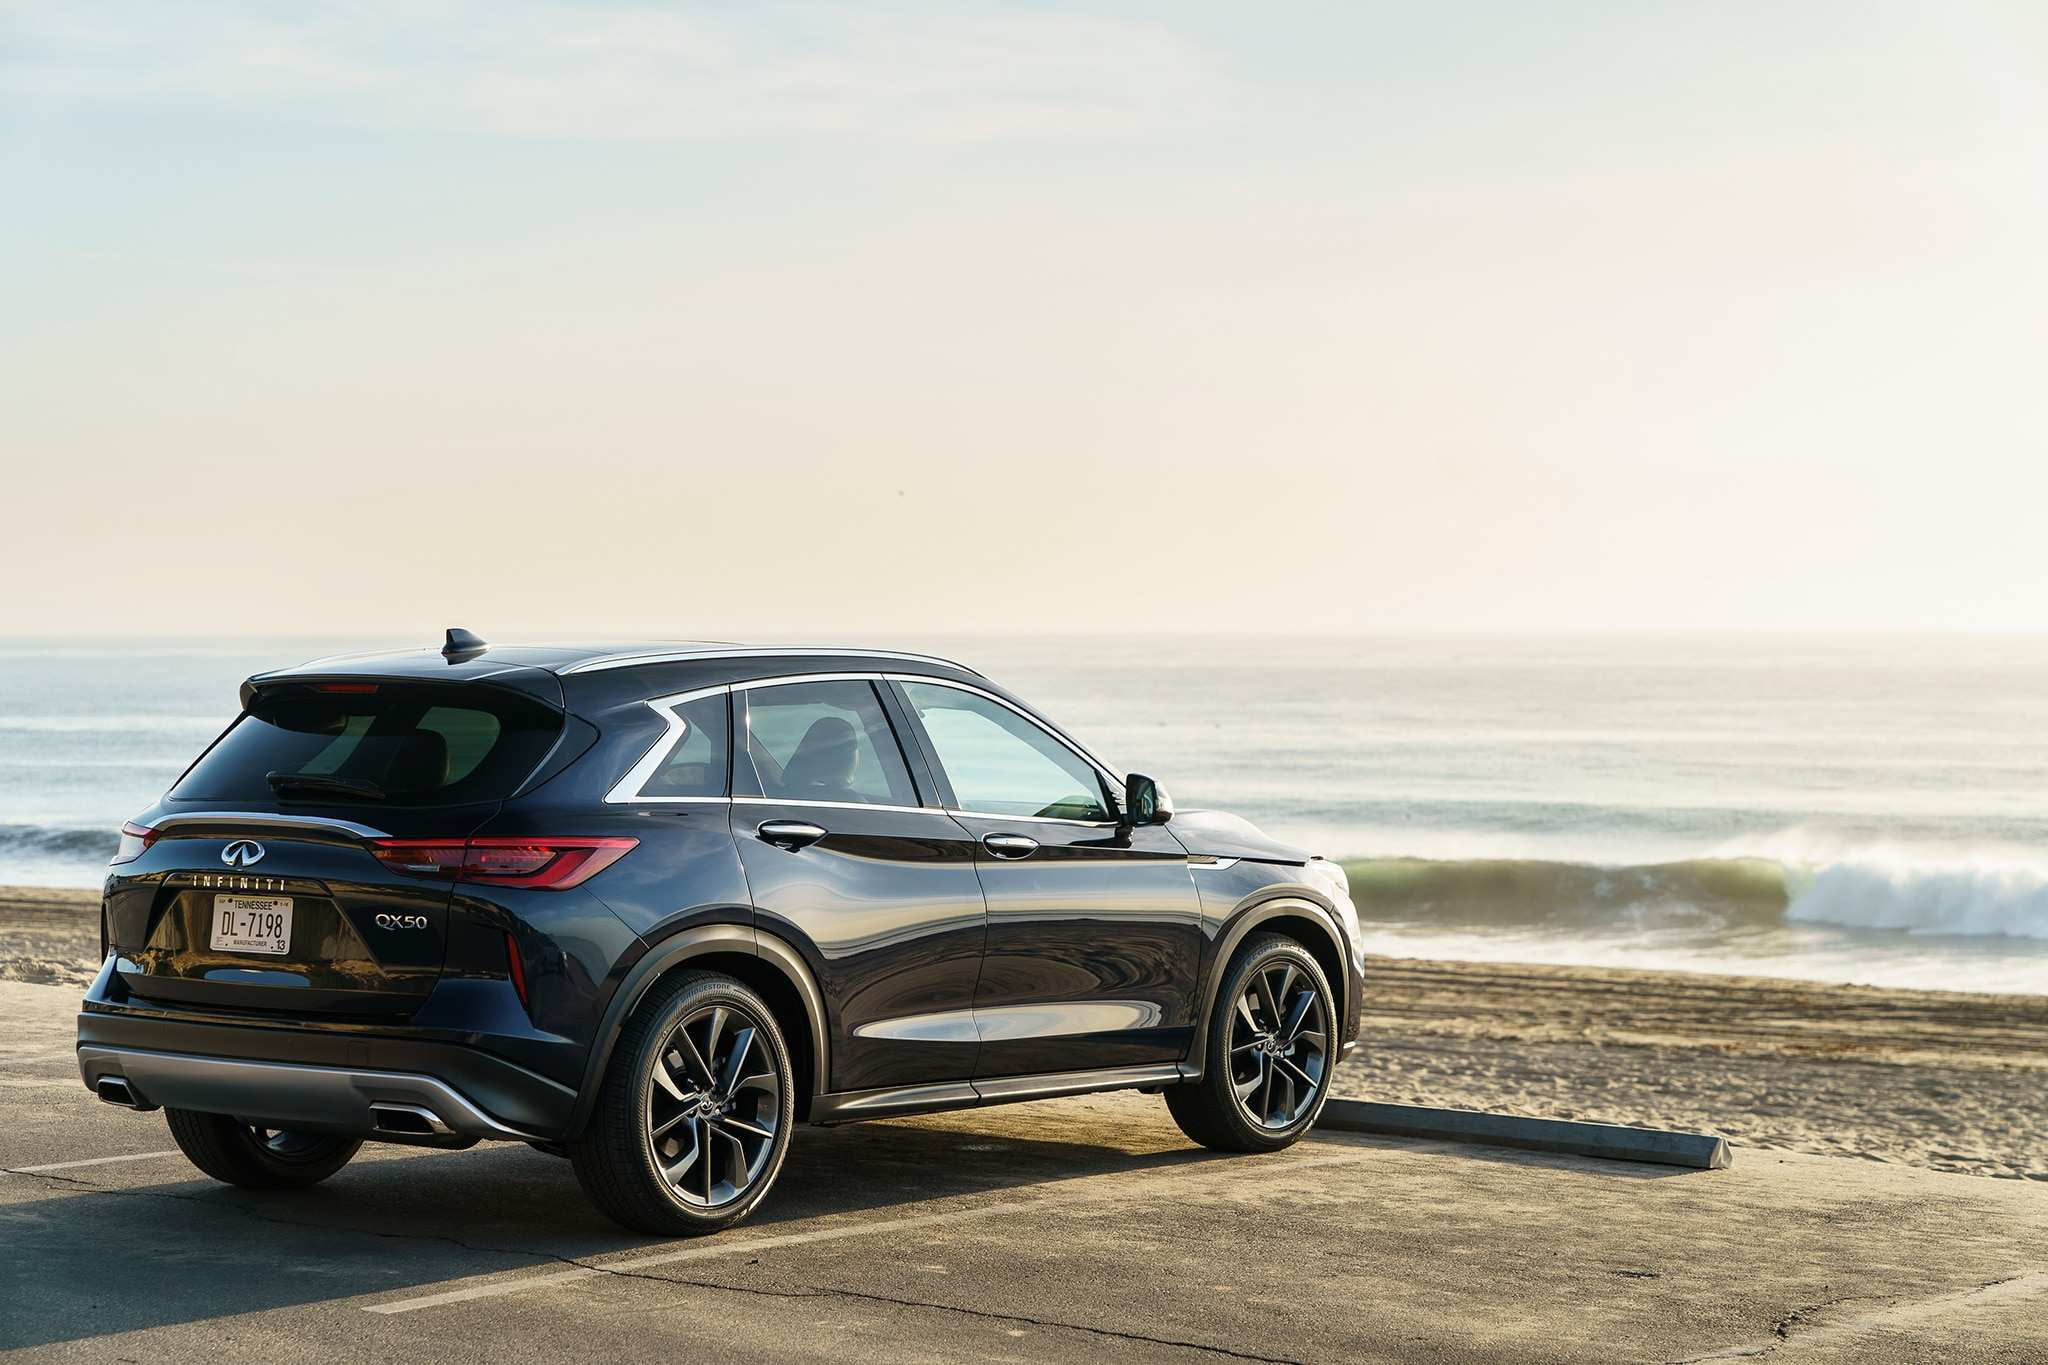 71 The Best 2019 Infiniti Qx50 Autograph Price Release Date by Best 2019 Infiniti Qx50 Autograph Price